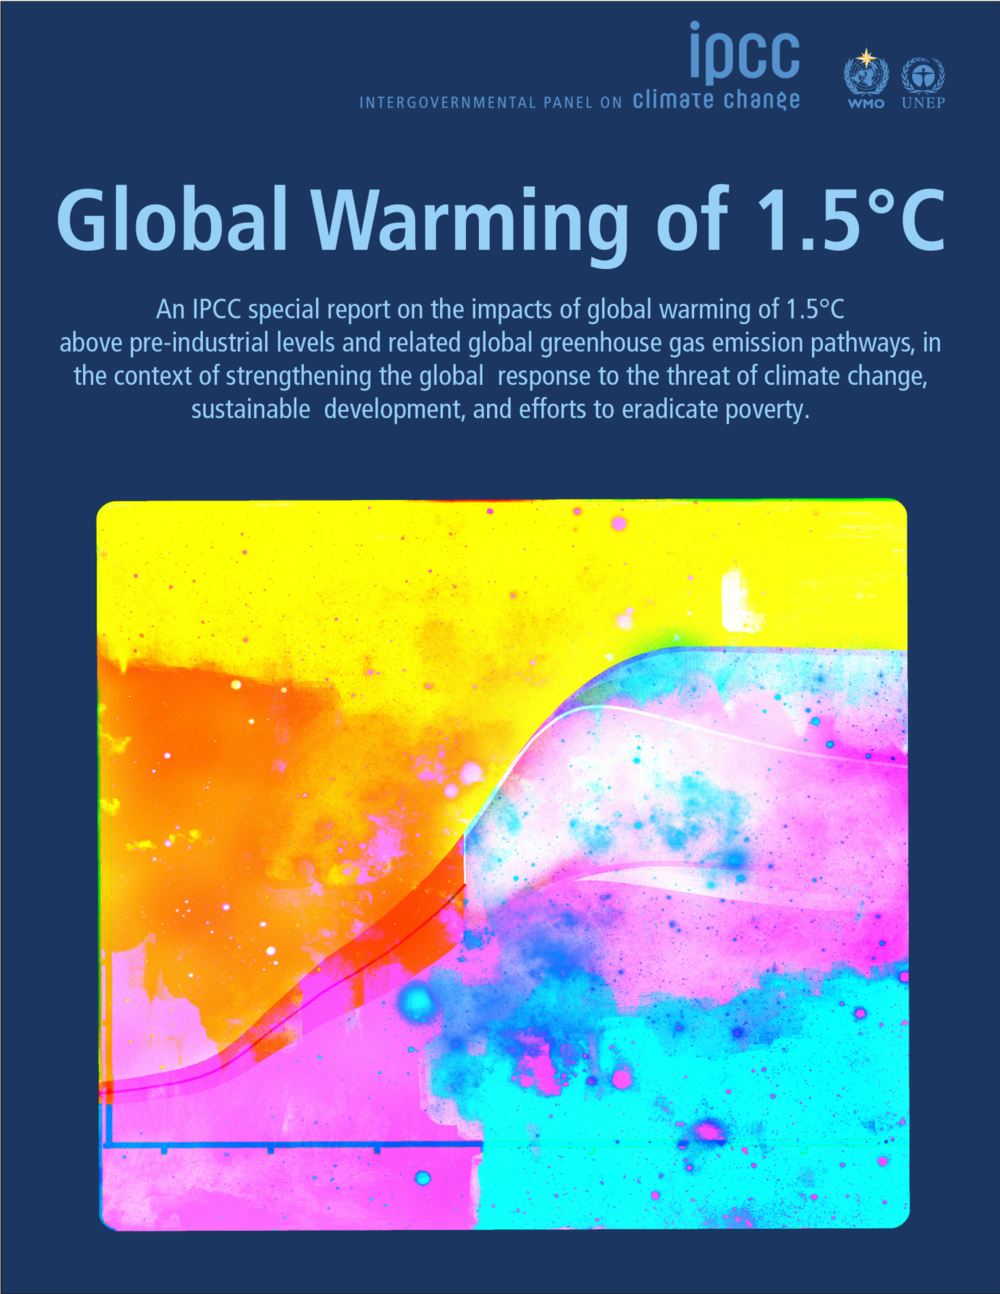 "THE ART IS FEATURED ON THE COVER OF THE MAJOR REPORT, ""GLOBAL WARMING OF 1.5C"", RELEASED BY THE IPCC, THE PREMIER CLIMATE SCIENCE ORGANIZATION SPONSORED JOINTLY BY THE UNITED NATIONS AND THE WORLD METEROLOGICAL ORGANIZATION."